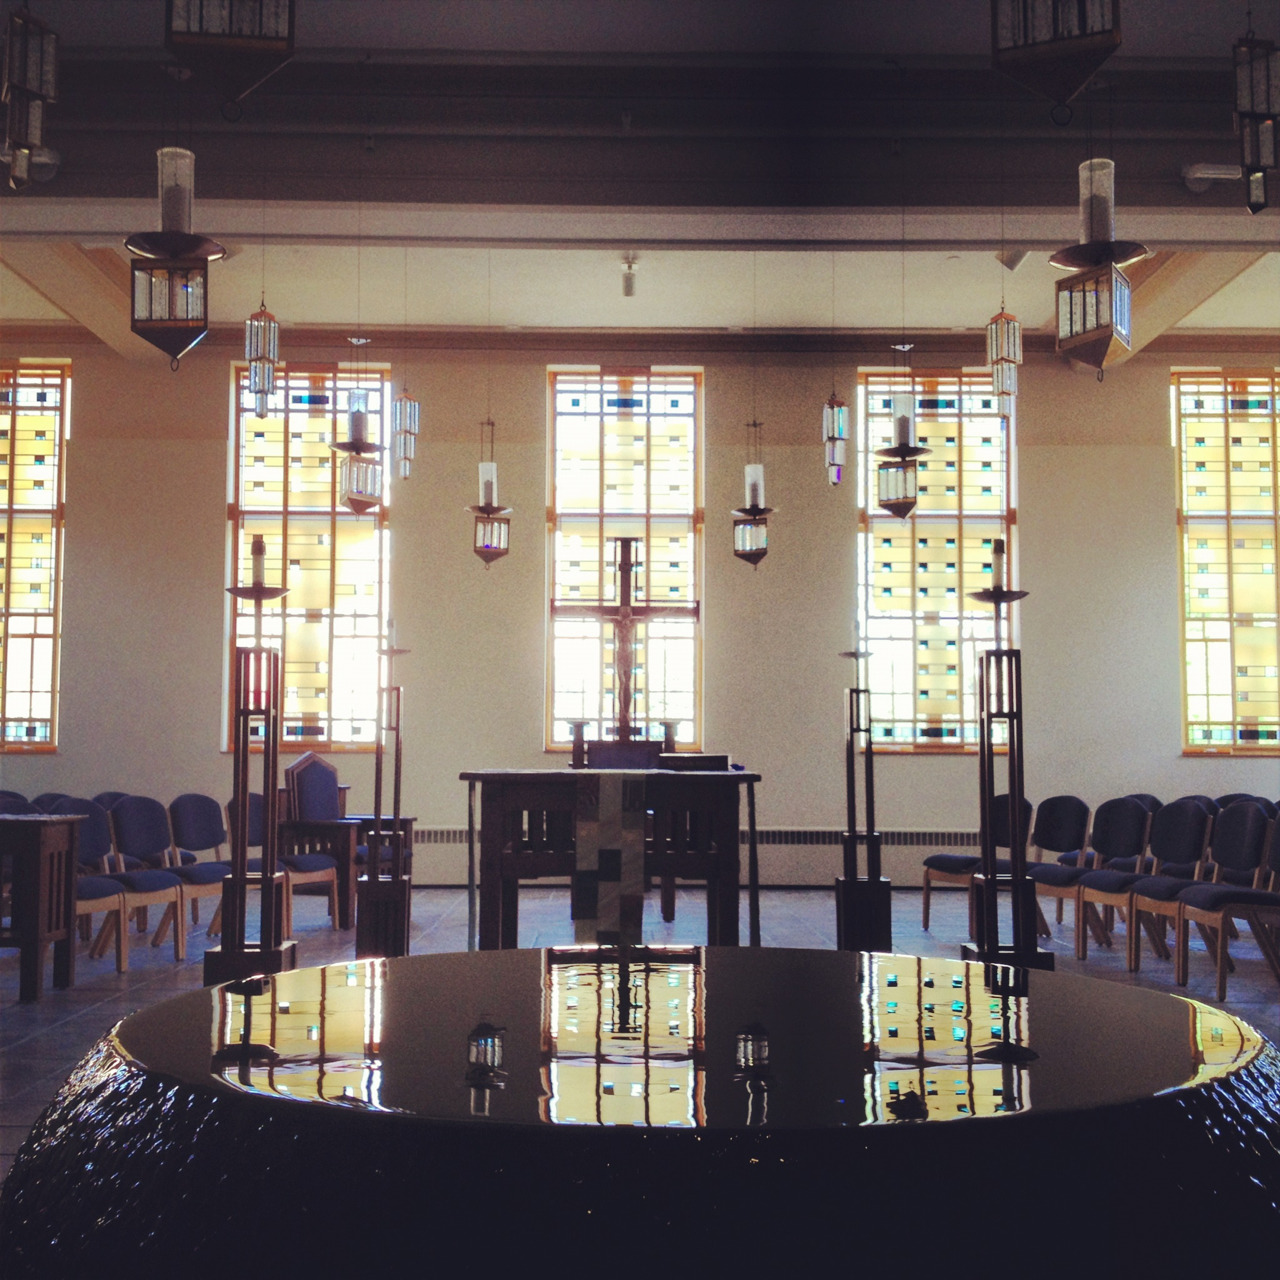 St. Ignatius Chapel at the University of Detroit Mercy